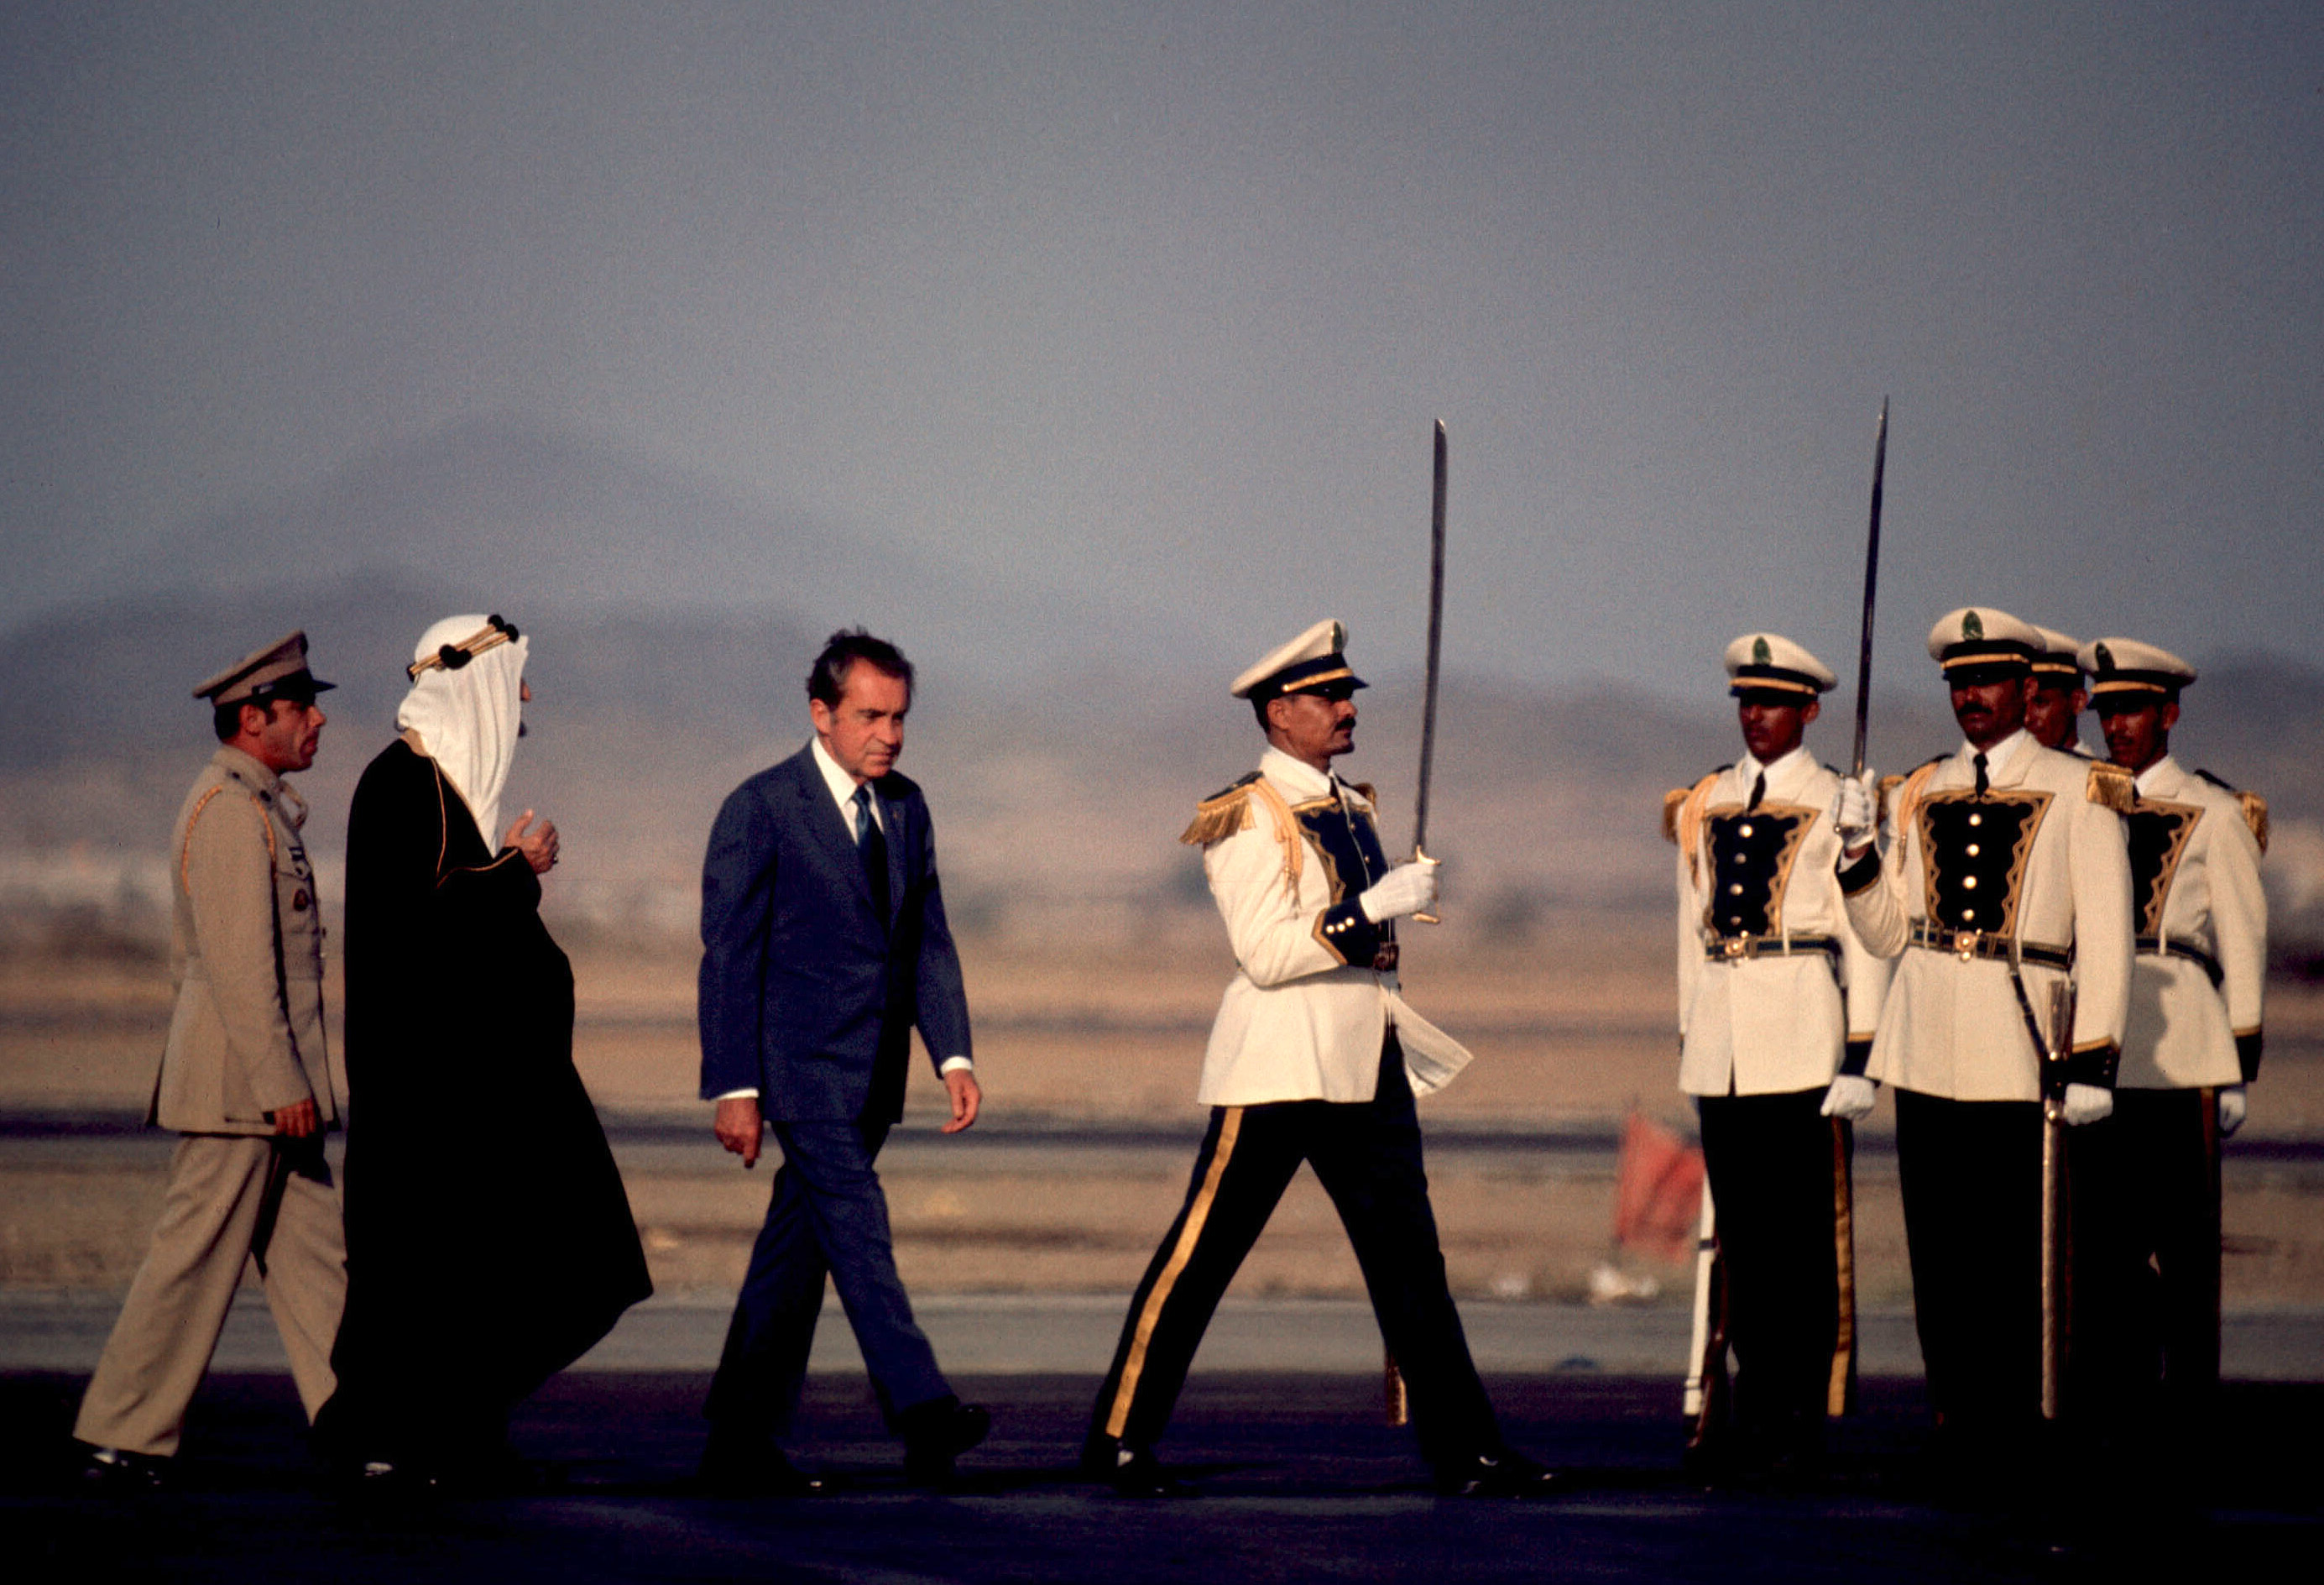 The Untold Story Behind Saudi Arabia's 41-Year U.S. Debt Secret